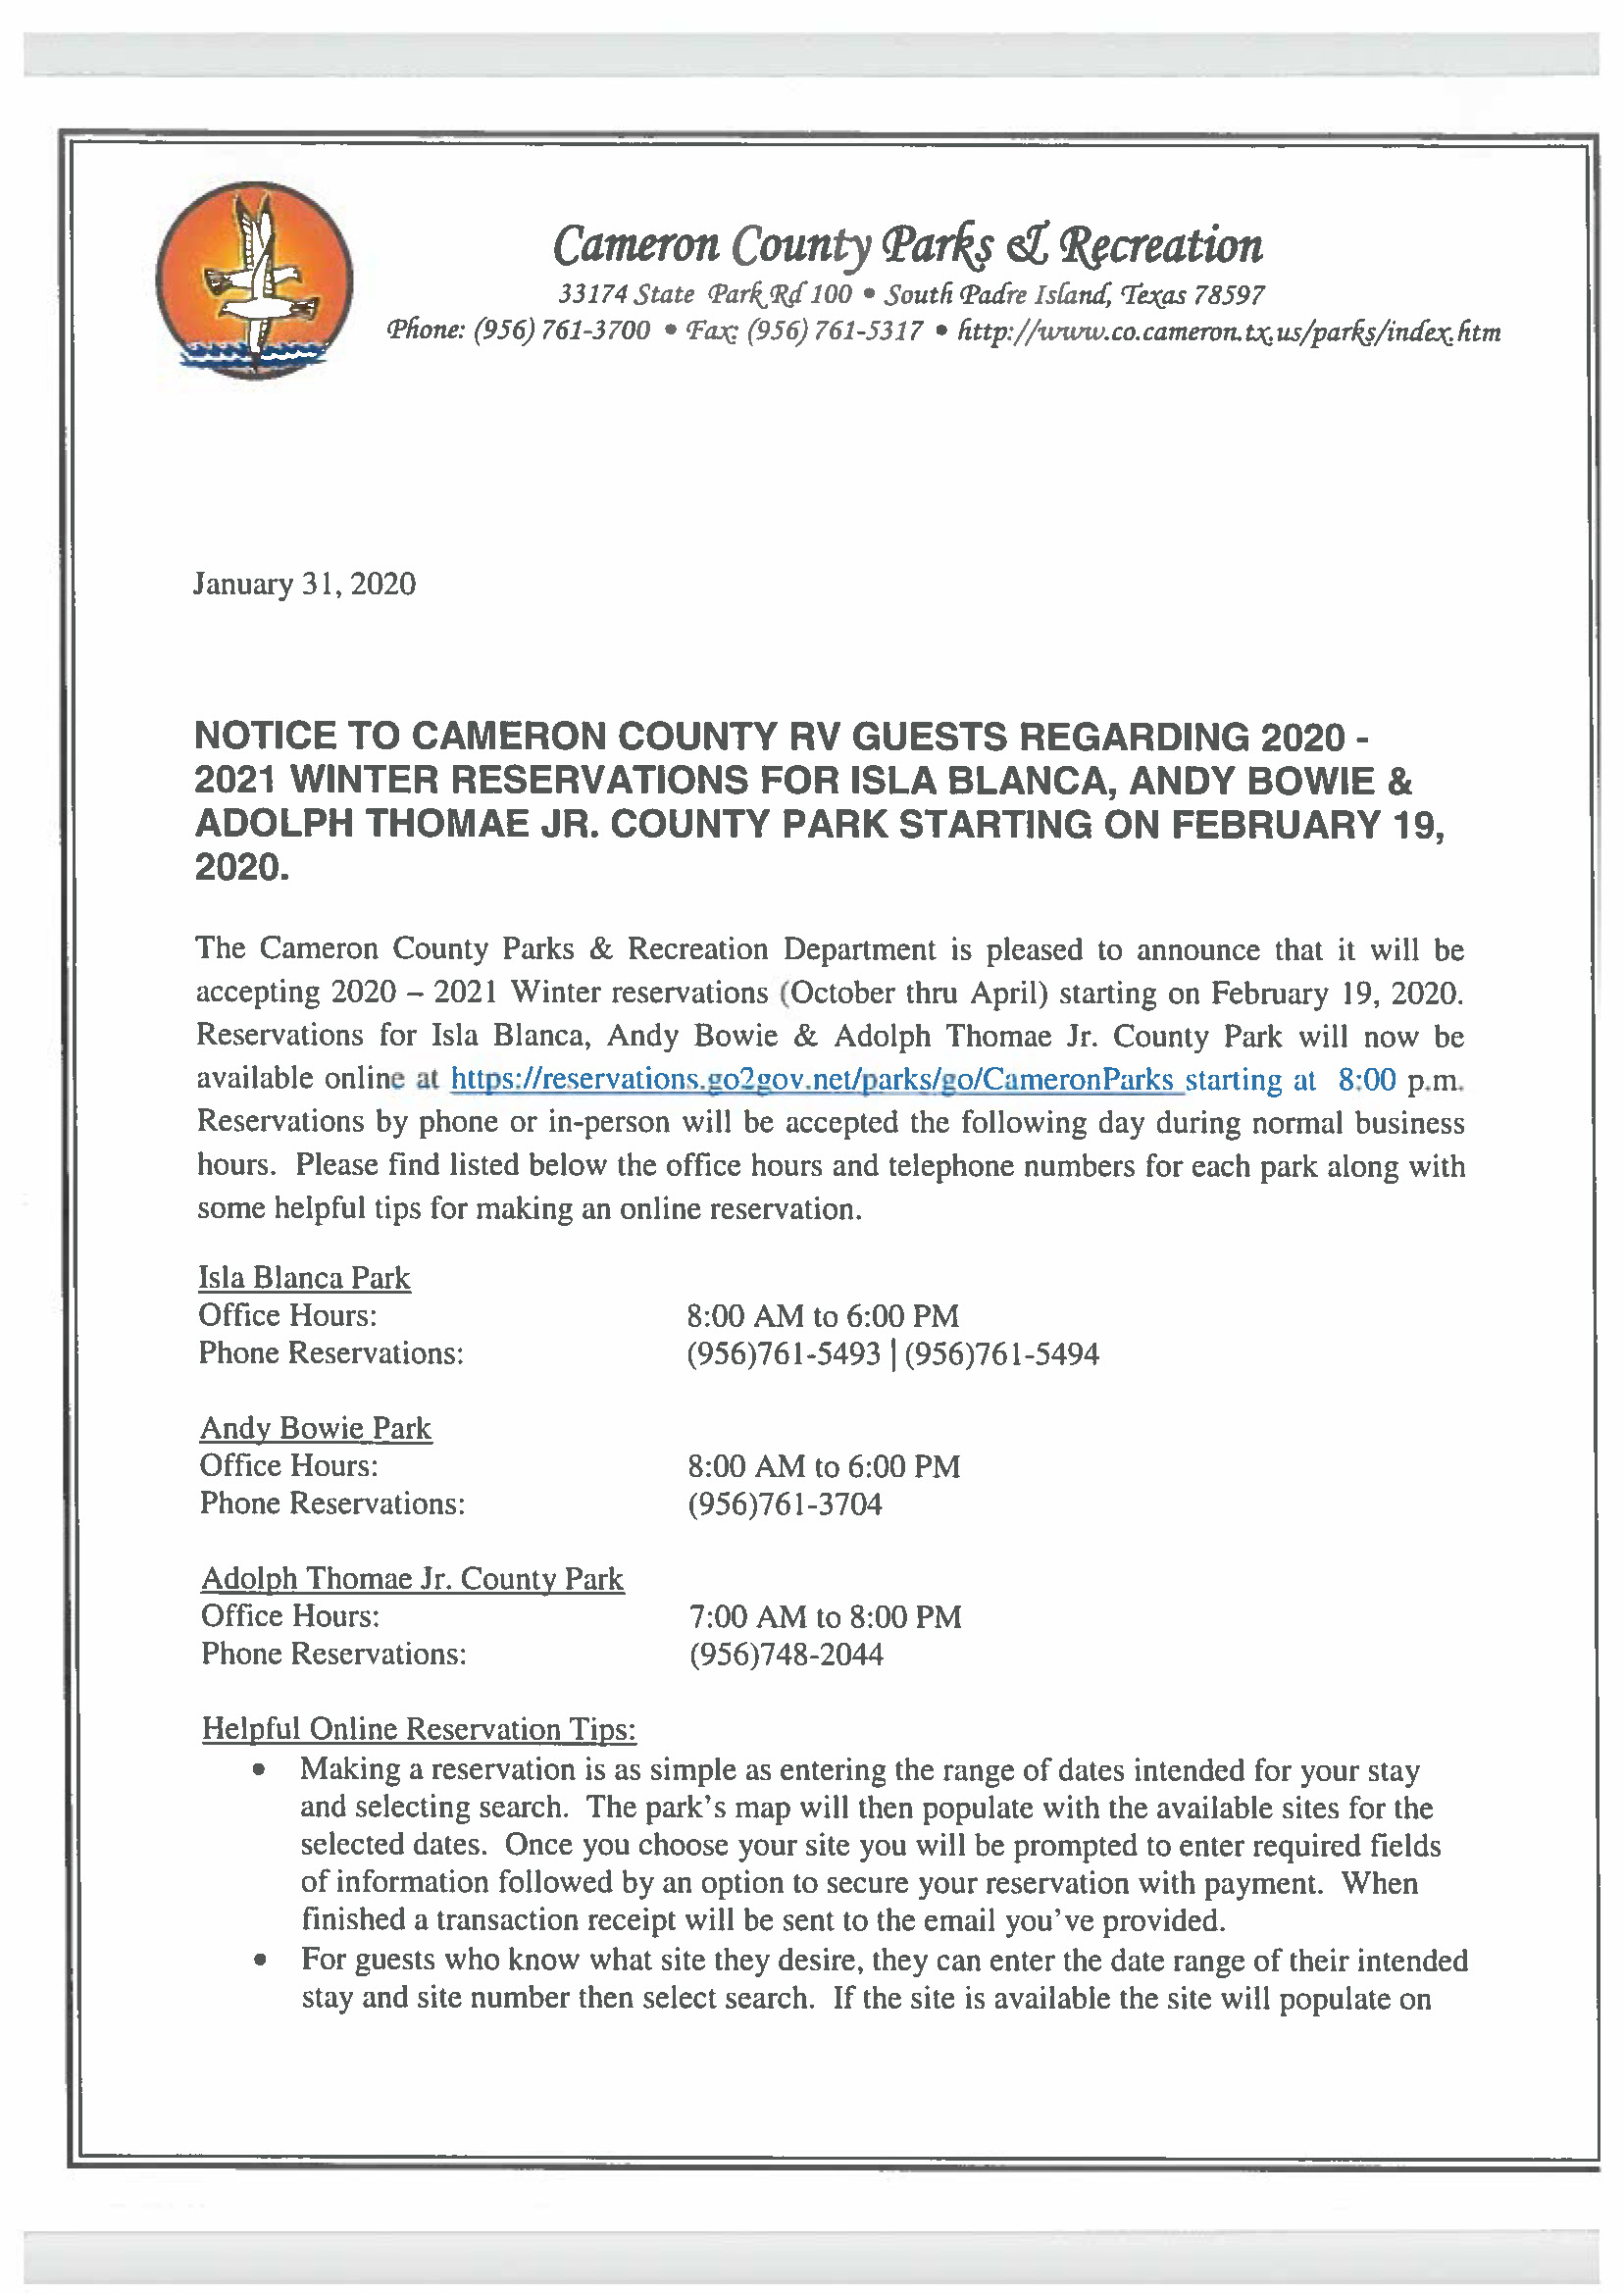 Notice To Cameron County Winter RV GUESTS Regarding Resevervations 2020 2021 1 31 20 Page 1